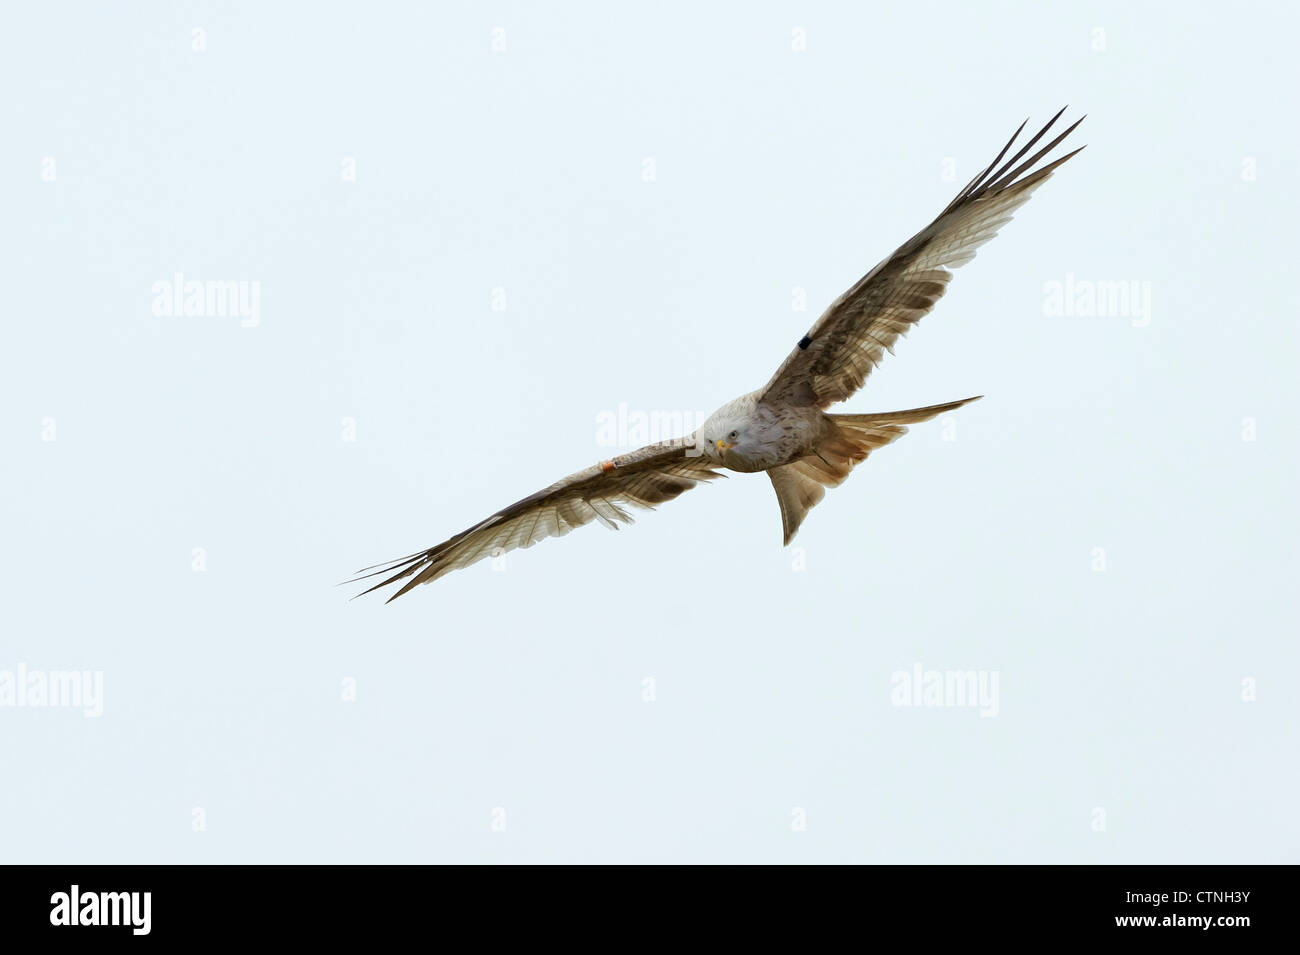 A leucistic red kite (Milvus milvus) in flight at Gigrin Farm, Rhayader, mid Wales. January 2011. - Stock Image